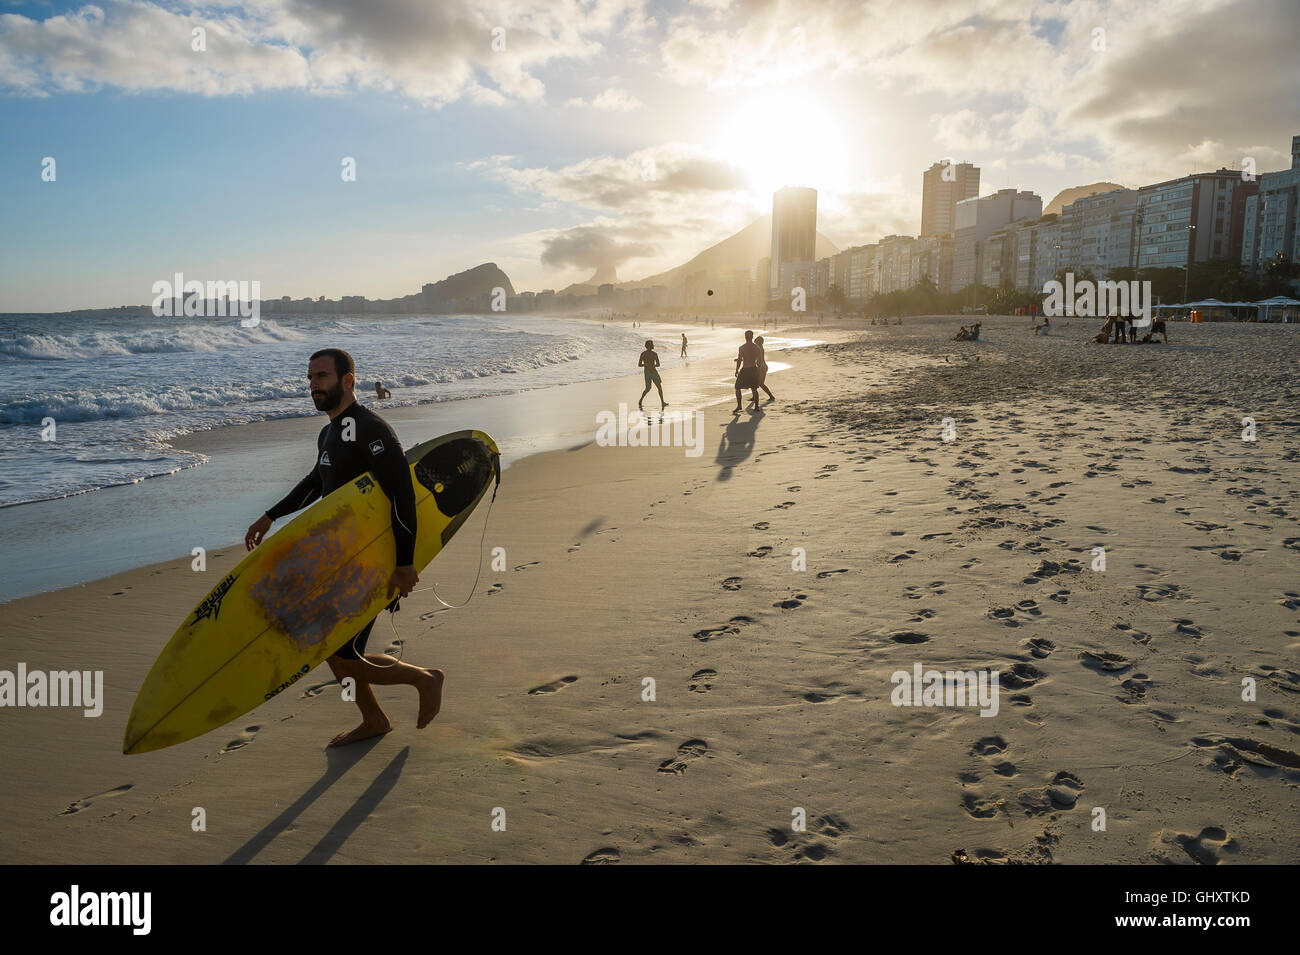 RIO DE JANEIRO - OCTOBER 30, 2015: A Brazilian surfer heads to the sea as a group plays altinho on Copacabana Beach. - Stock Image